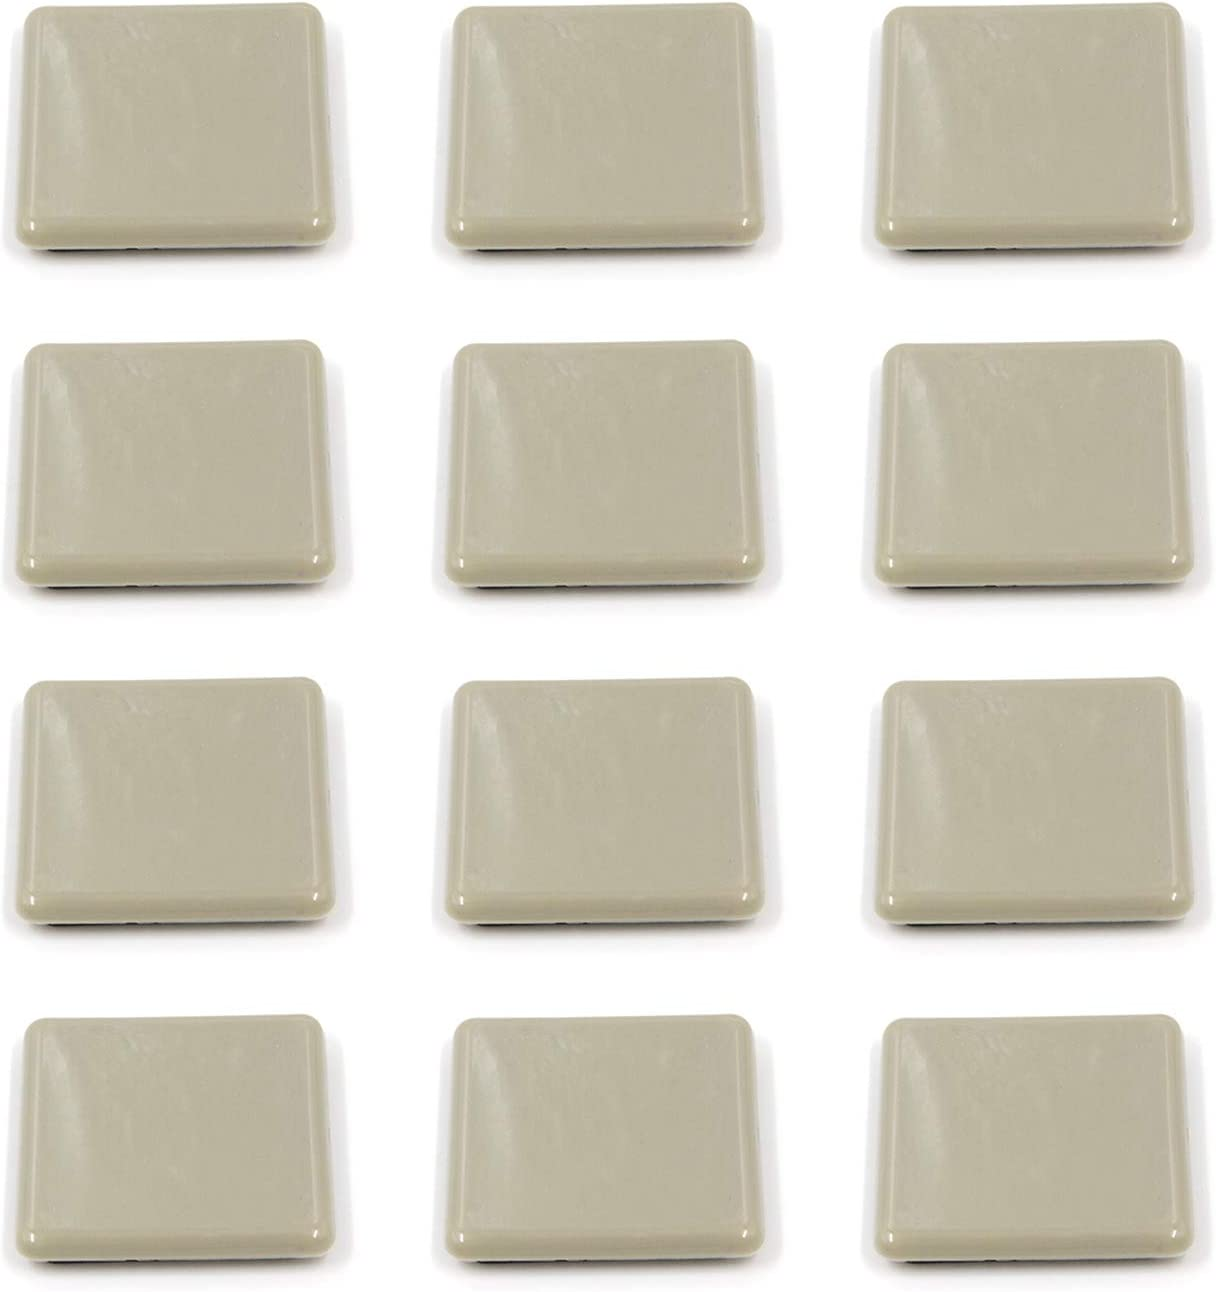 Tulead Furniture Moving Sliders Square Chair Sliders 2.52-Inch Diameter Furniture Moving Pads Shockproof Sofa Mover Pads Pack of 12